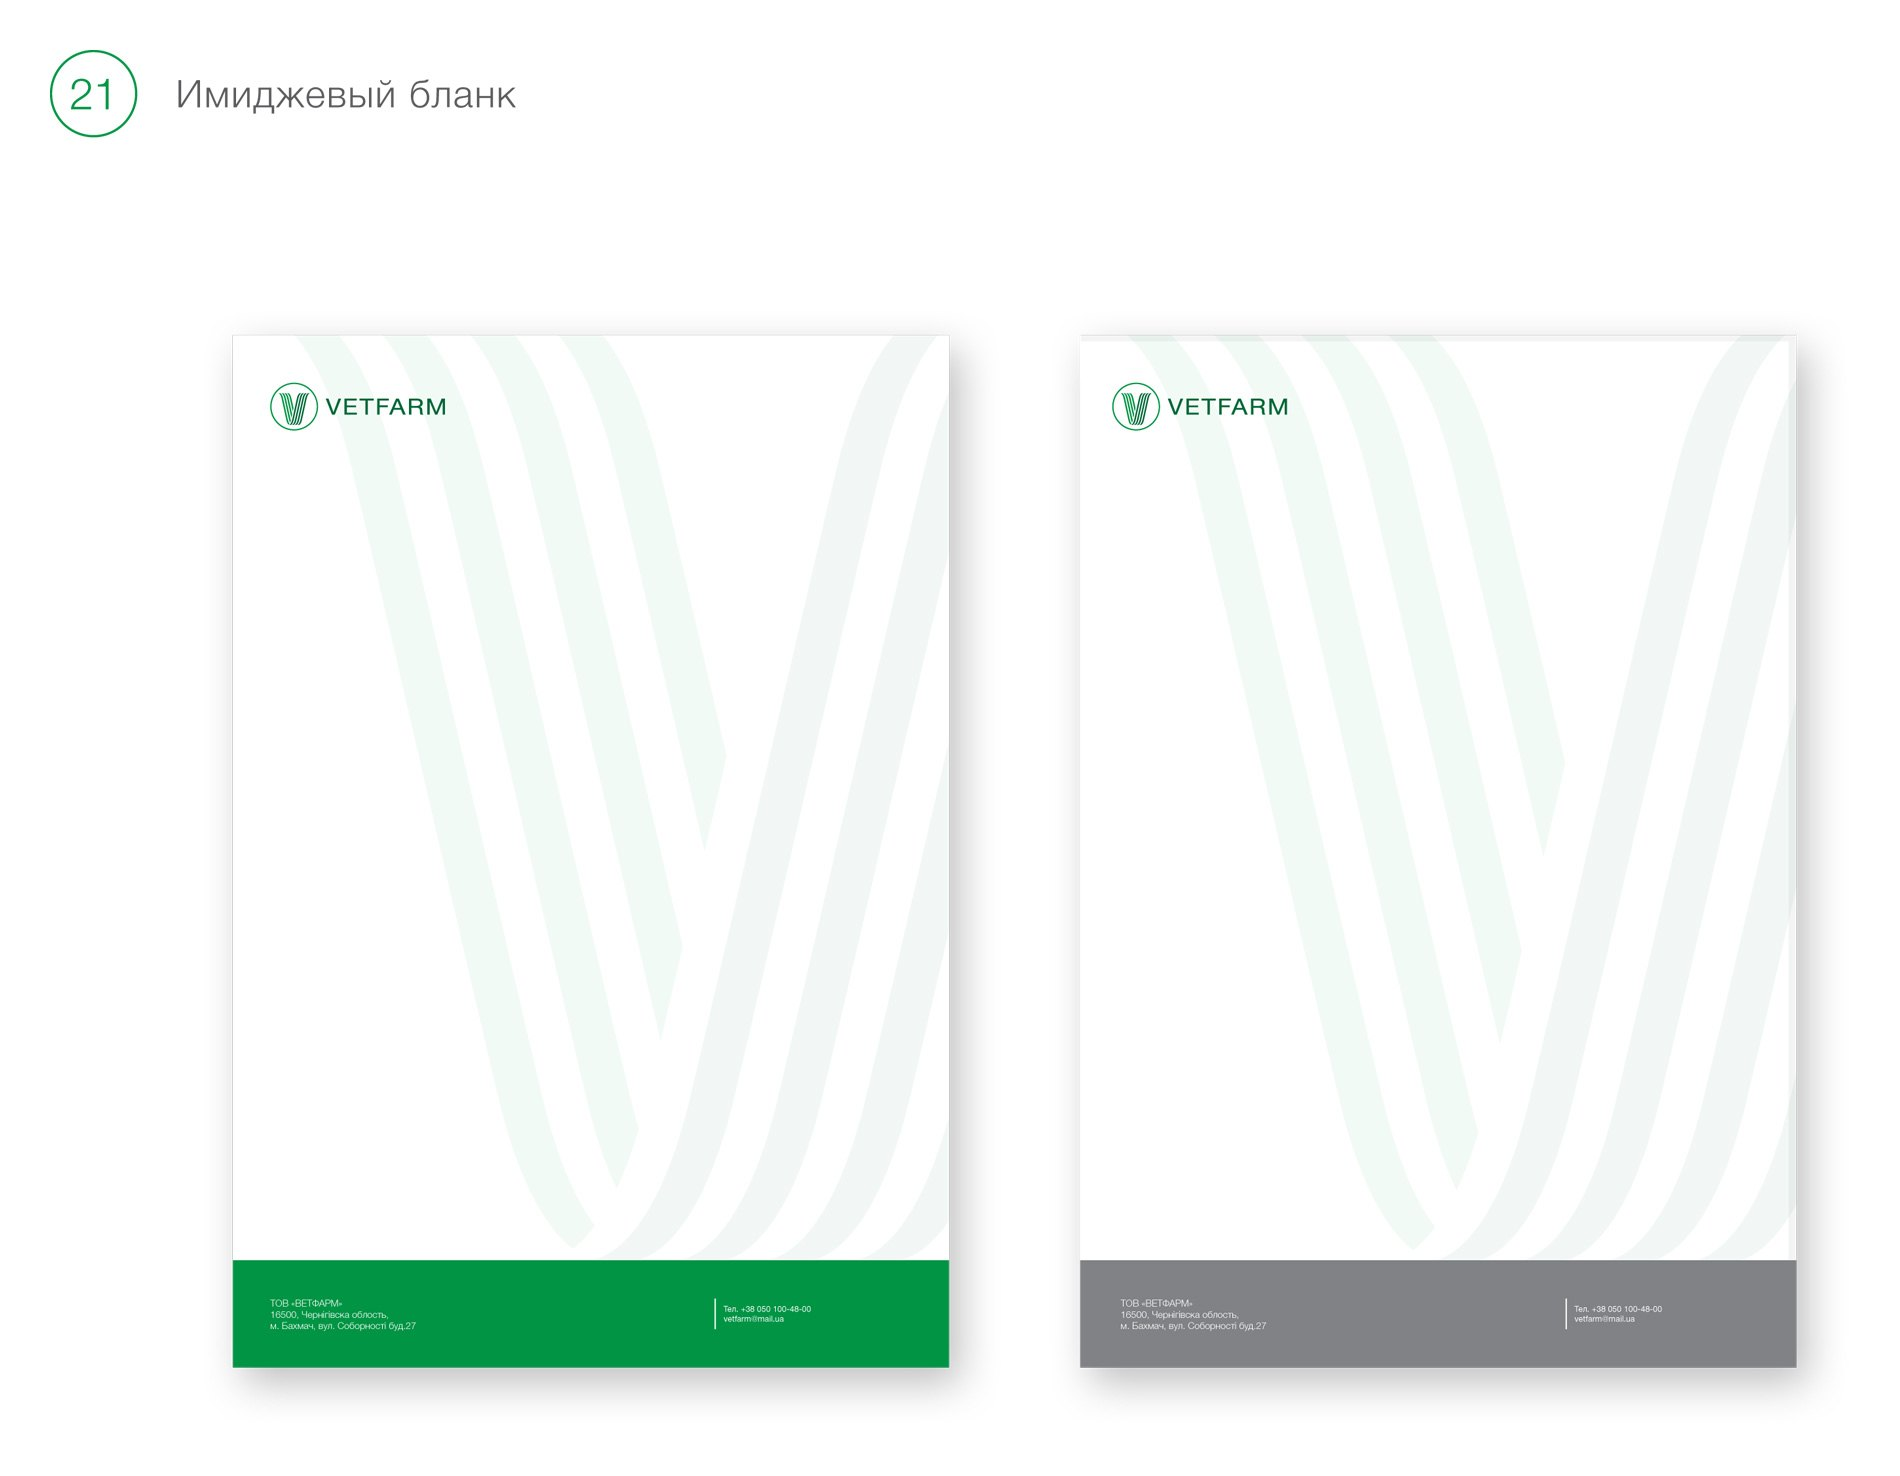 Brandbook development for Vetfarm company - manufacture, import and distribution of veterinary products portfolio